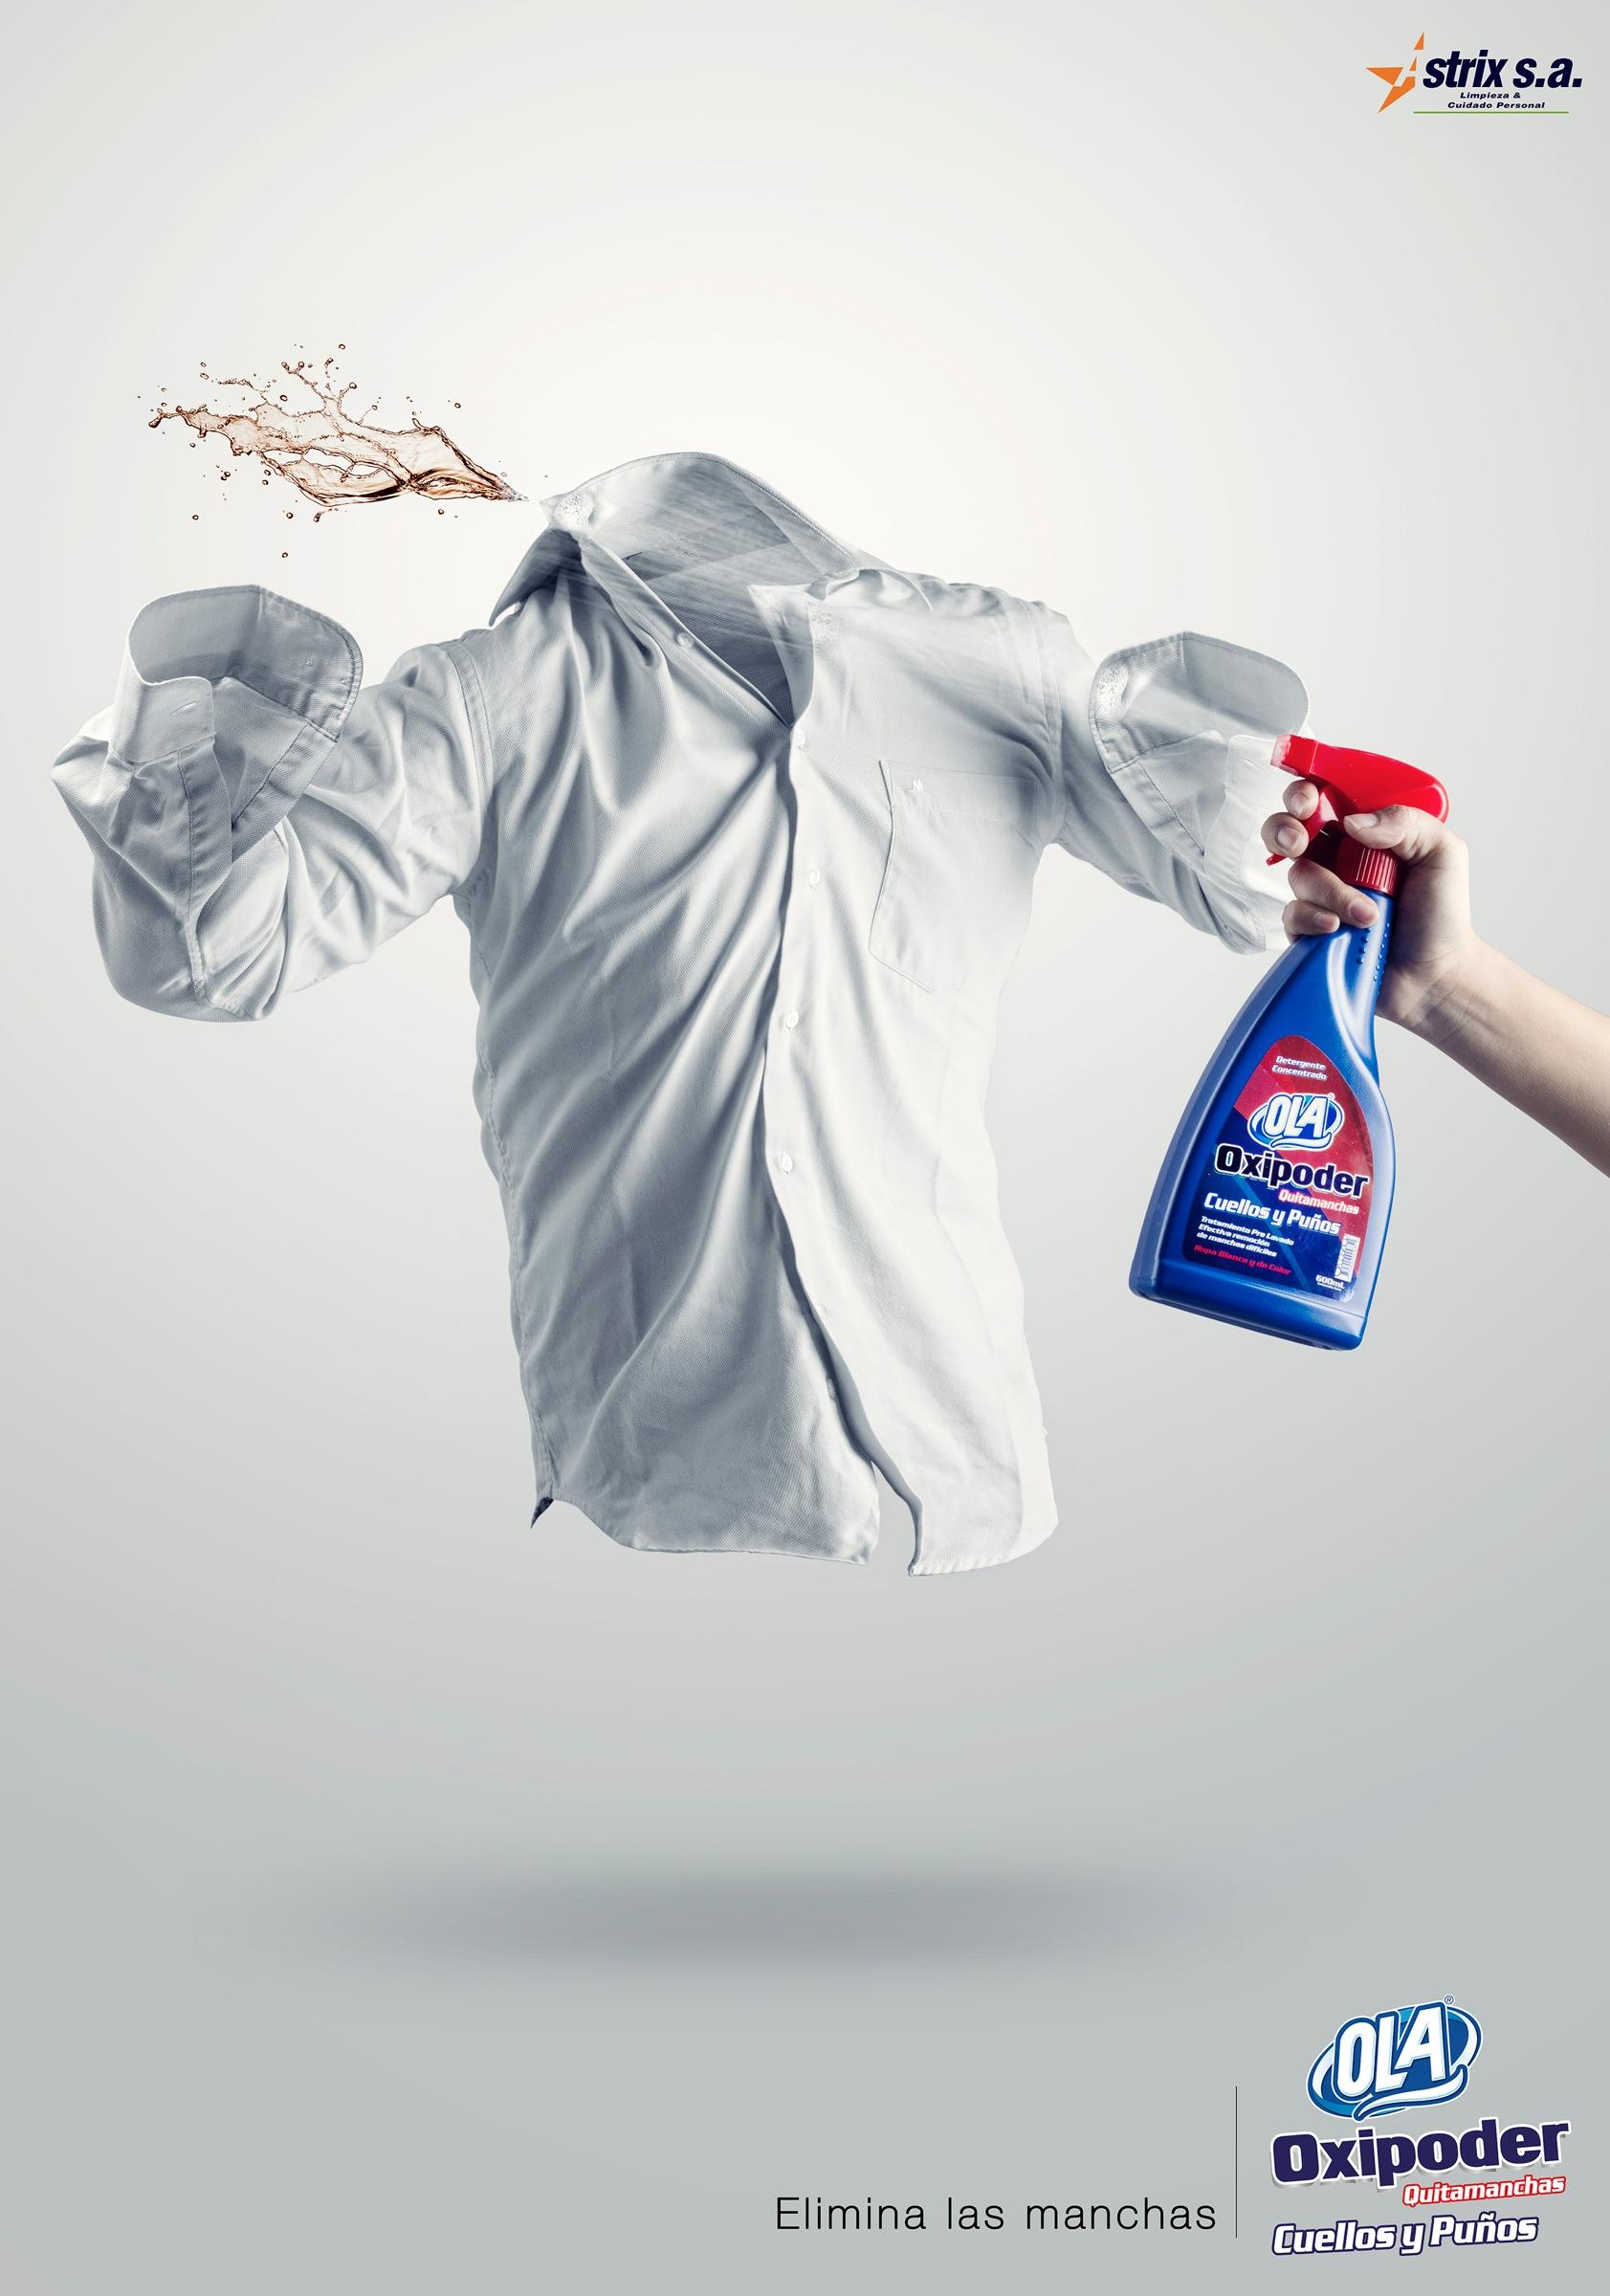 Ola Print Advert By WAWA: Eliminating stains, 1 | Ads of the World™